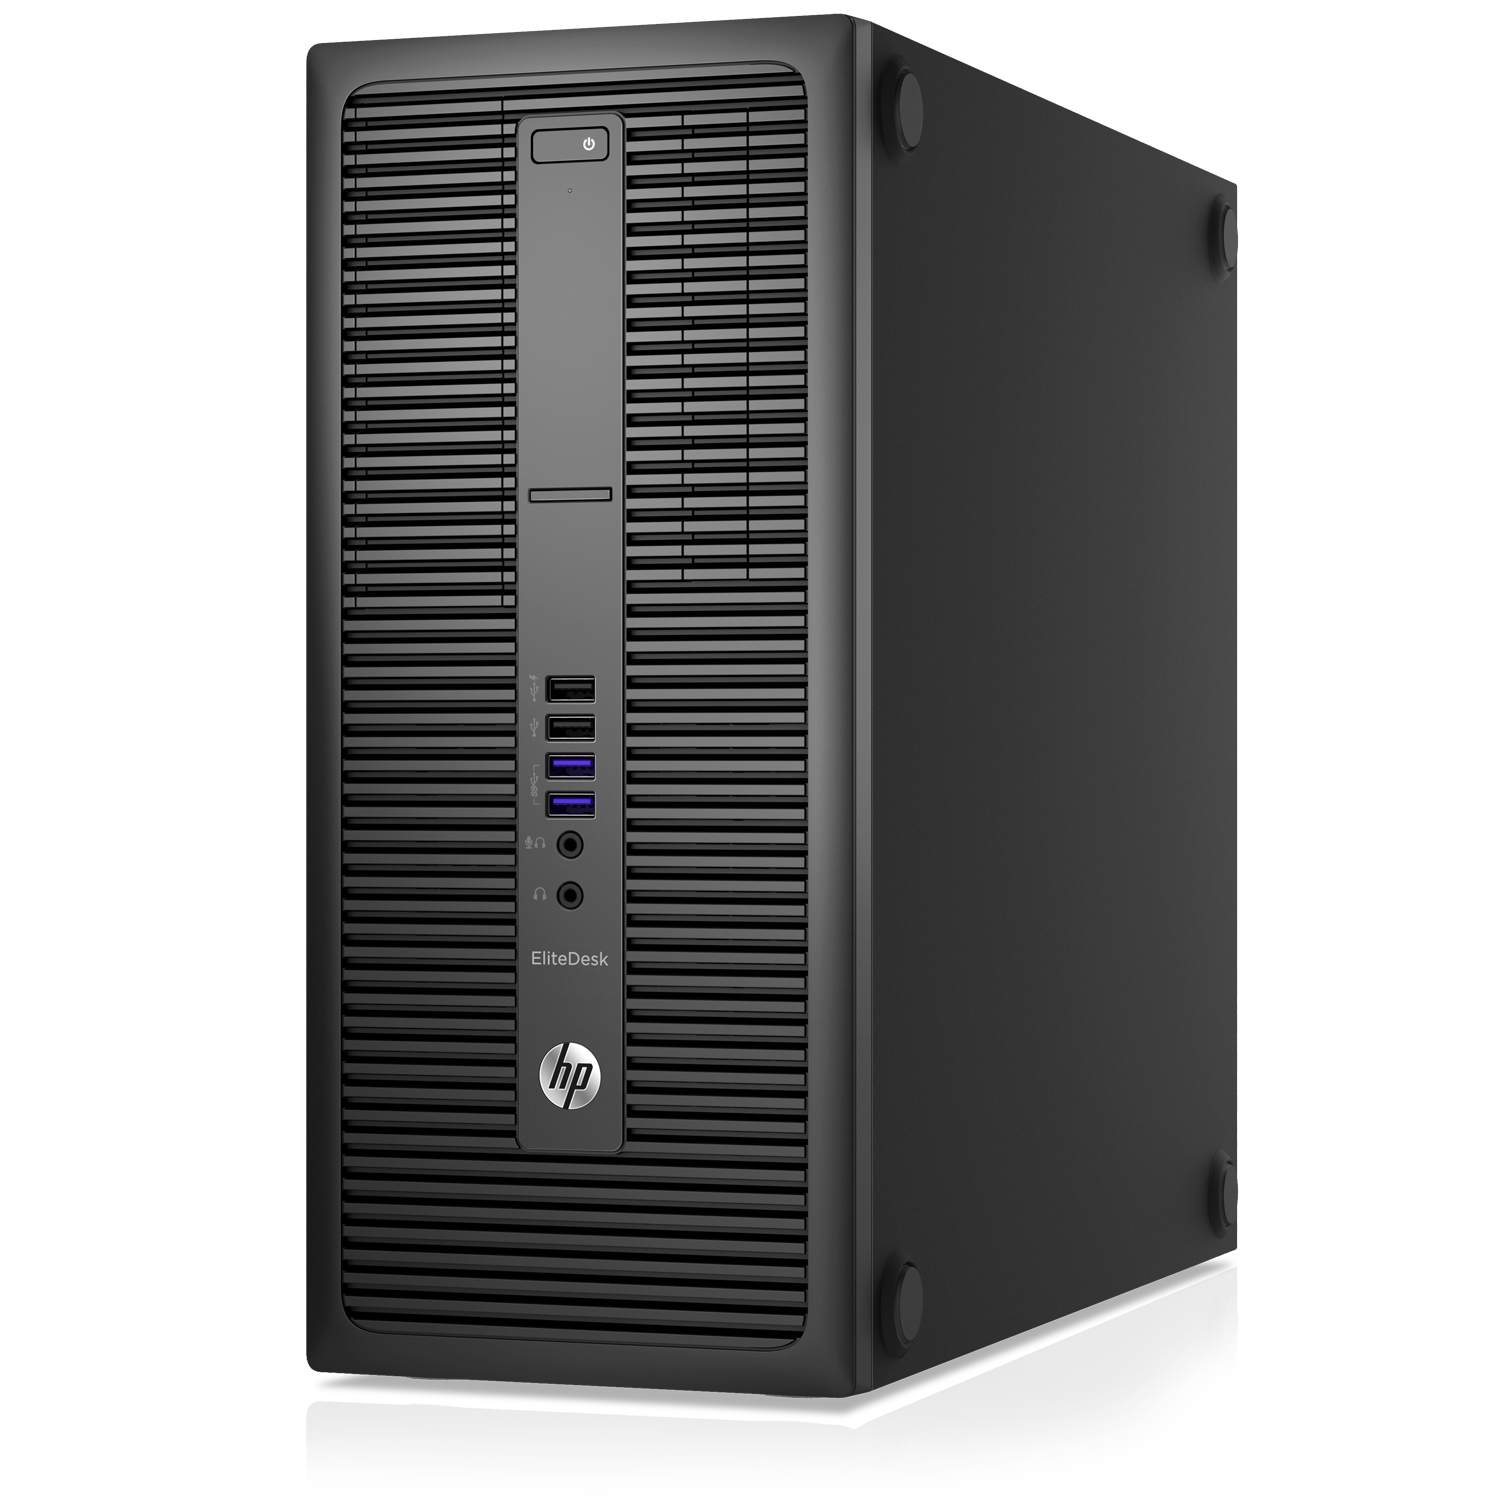 HP EliteDesk PC